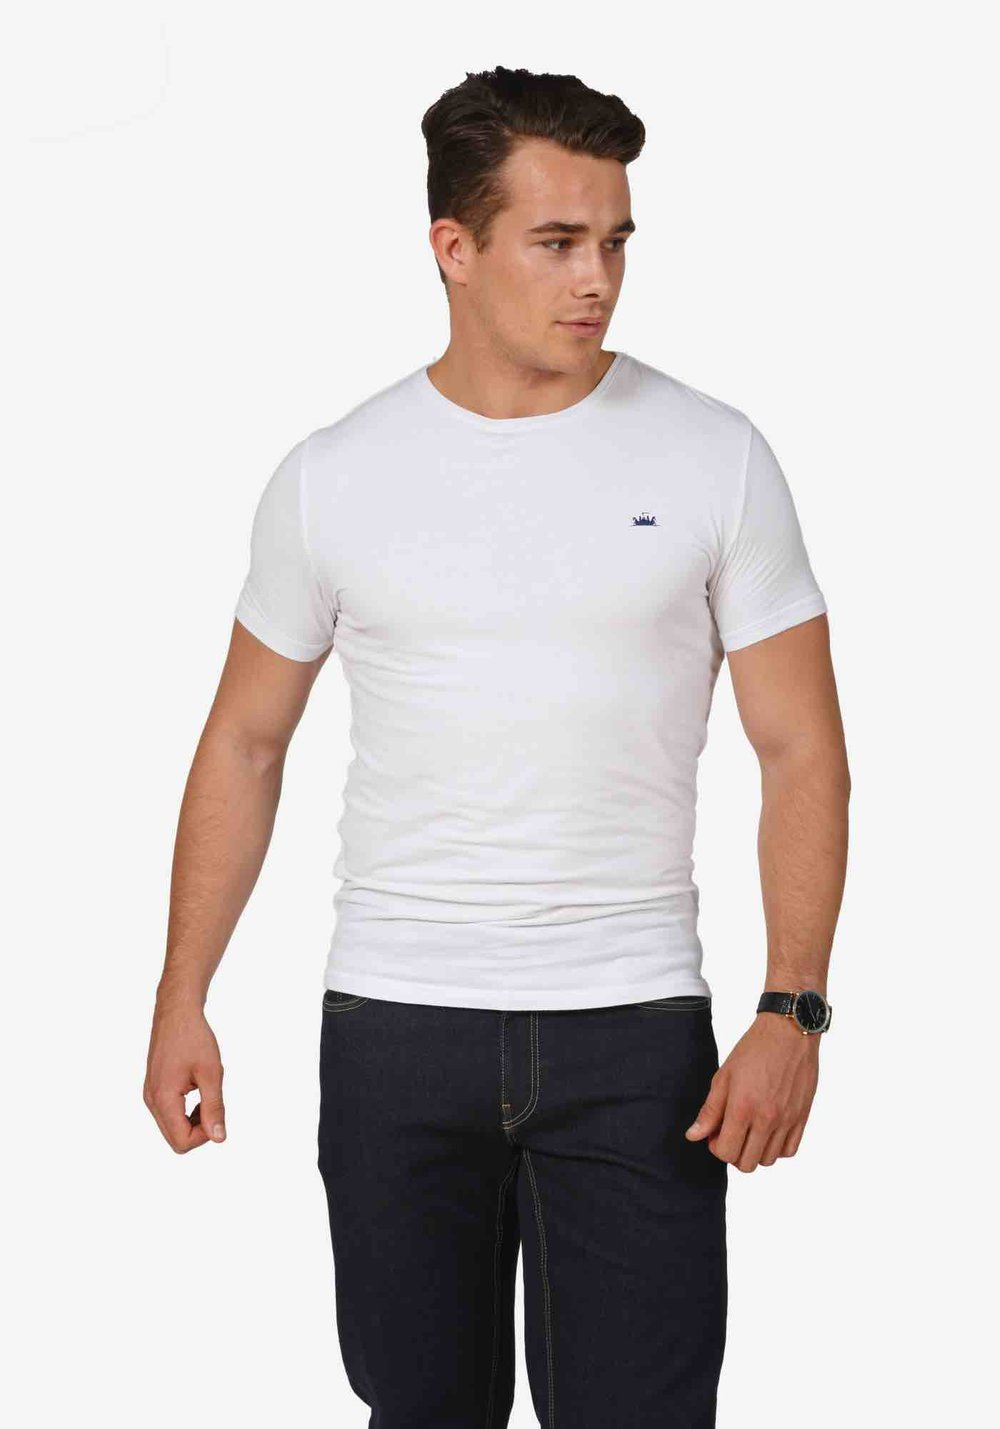 Tees_Store_Image_White_Front.jpg